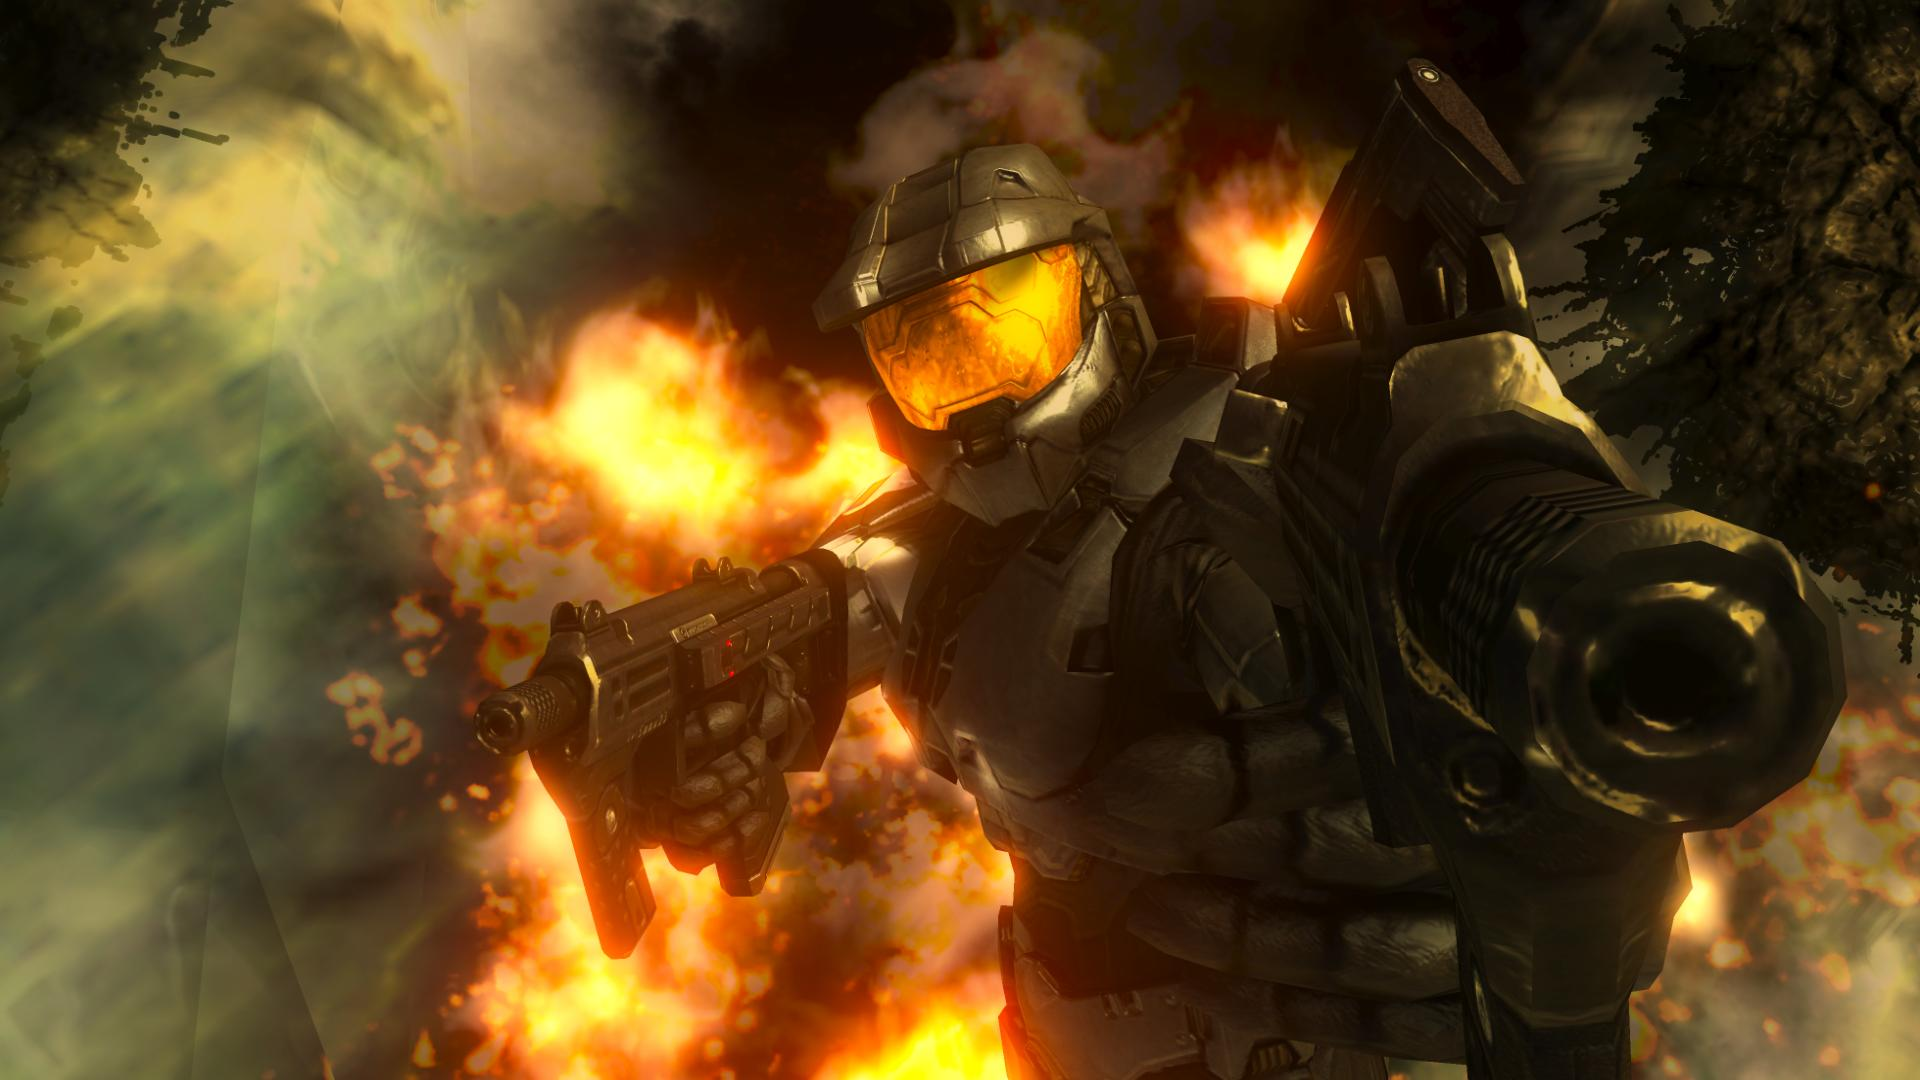 Free Download Halo 3 Master Chief Wallpaper Background Hd 14078